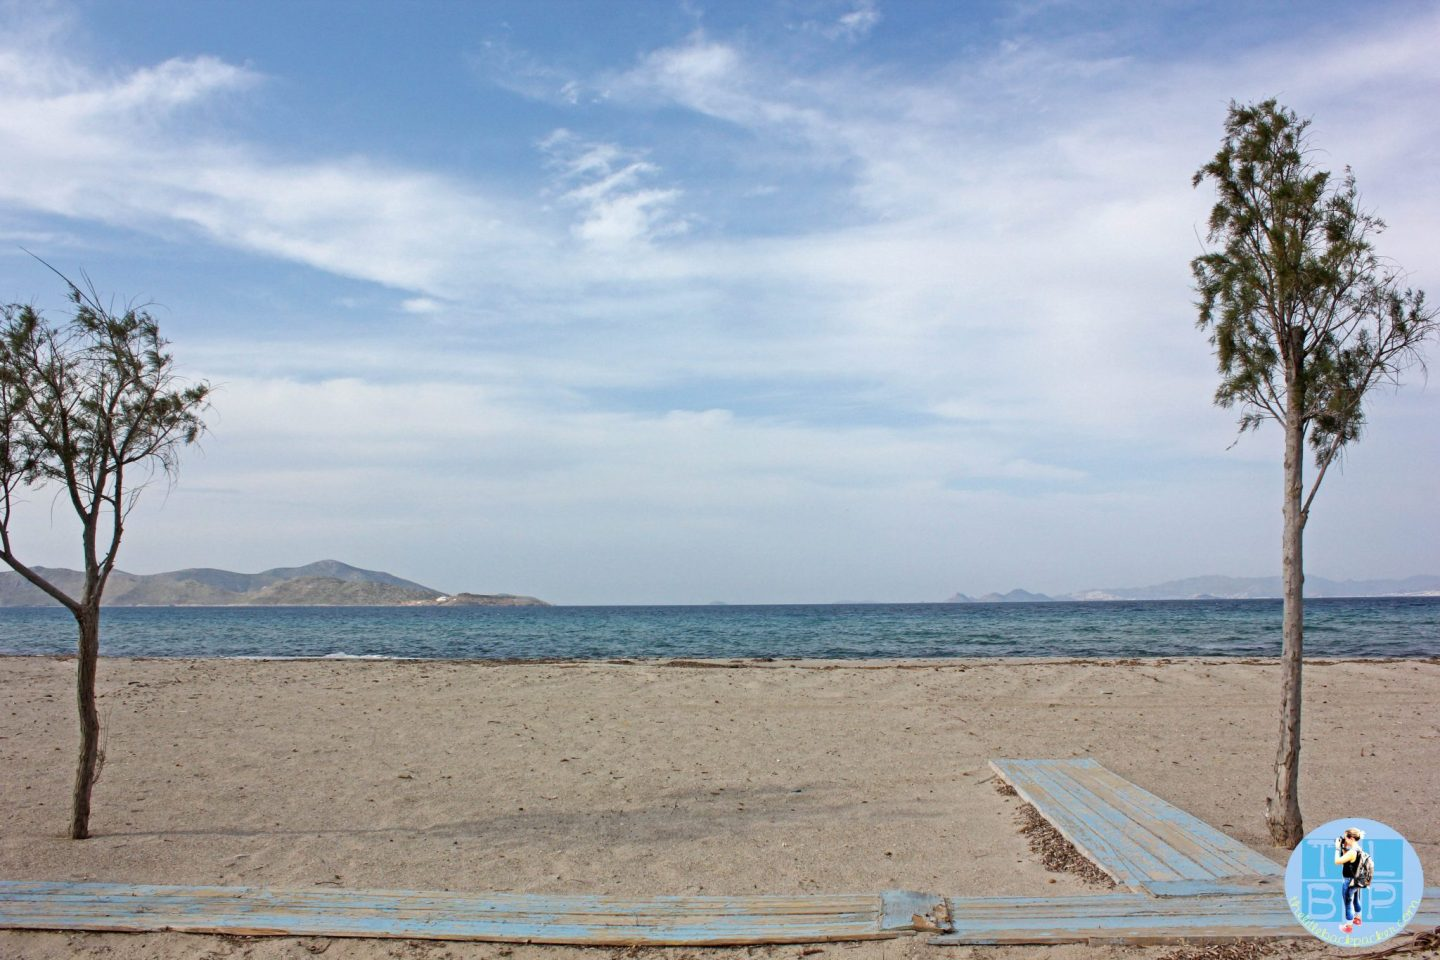 Exploring Kos by foot, bike and car